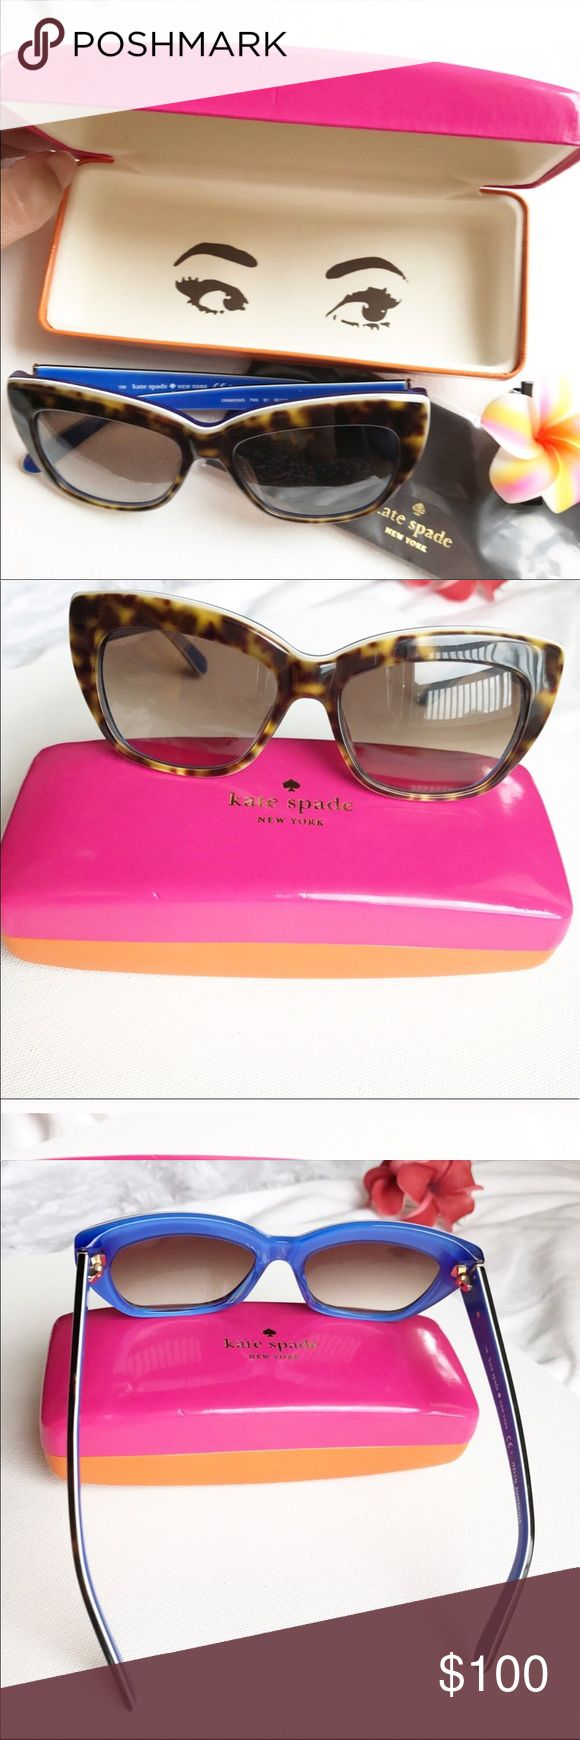 Kate Spade sunglasses Kate Spade New York Hello Sunshine Crimson blue cat frame sunglasses.  Frame is tortoise while the inside is blue.  No scratches on lens, comes with polish cloth in eyeglass case as seen.  Offers accepted. 🚫Trades kate spade Accessories Sunglasses